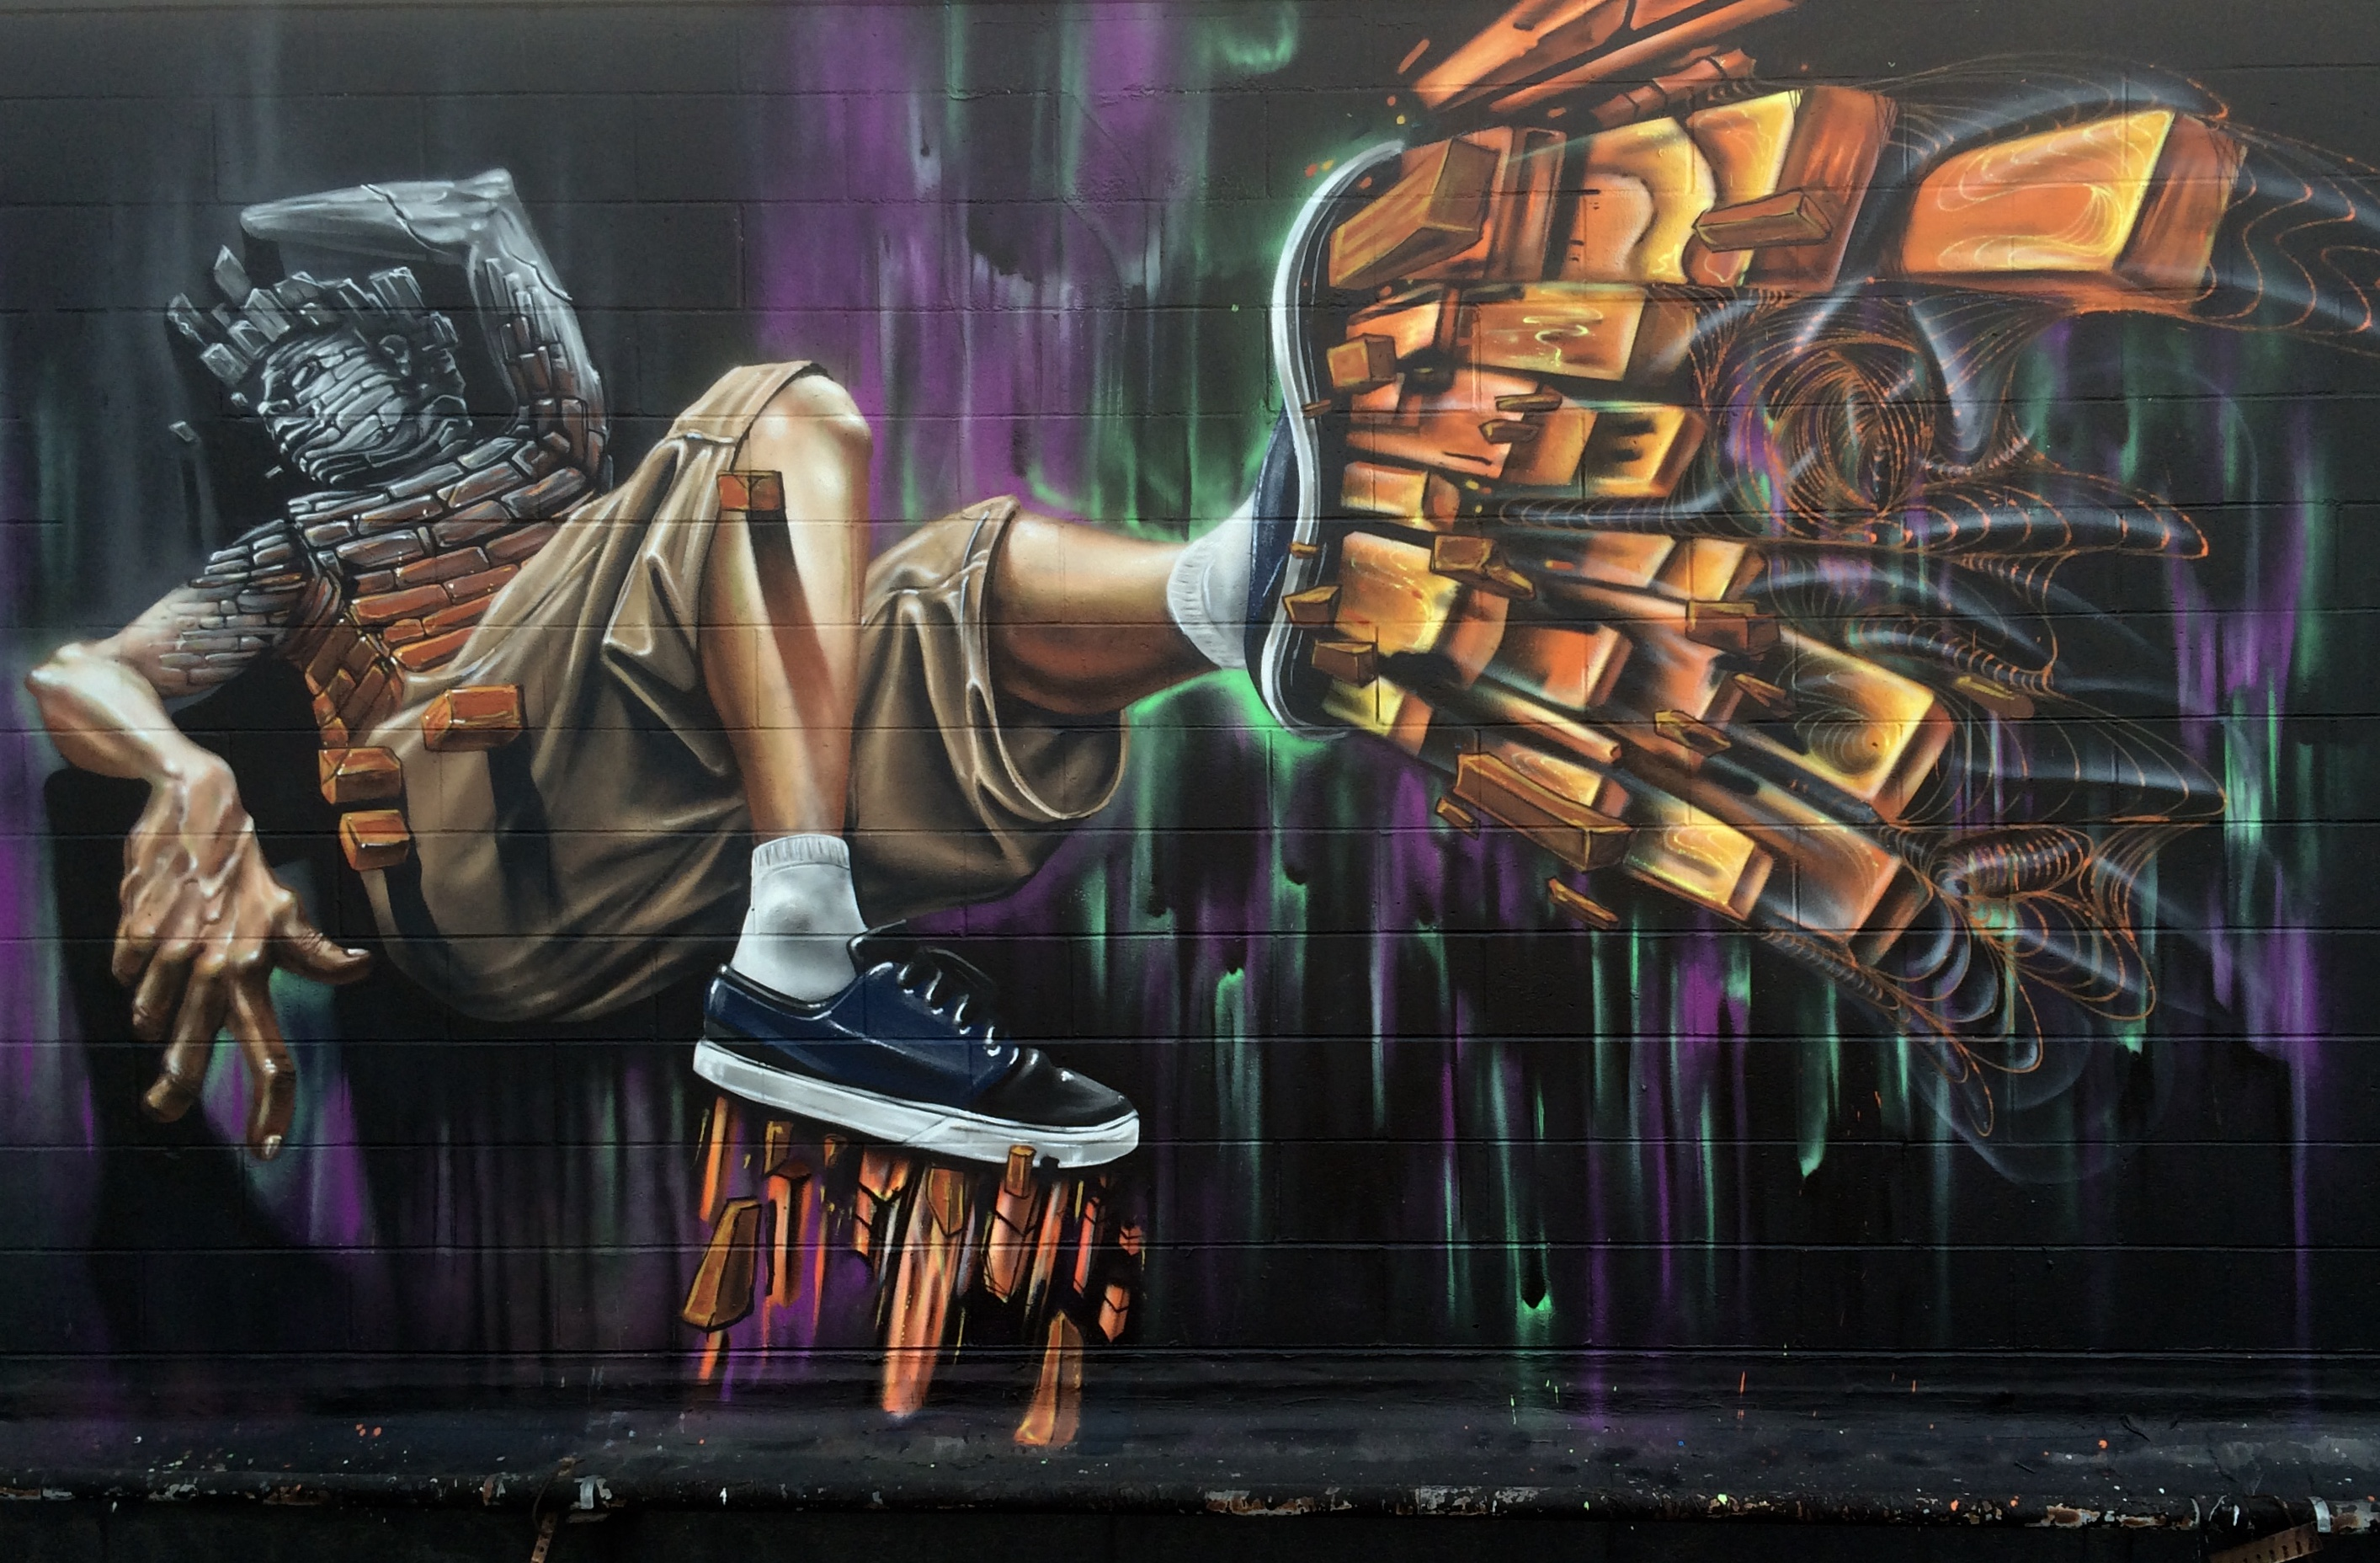 Off the Wall Mural